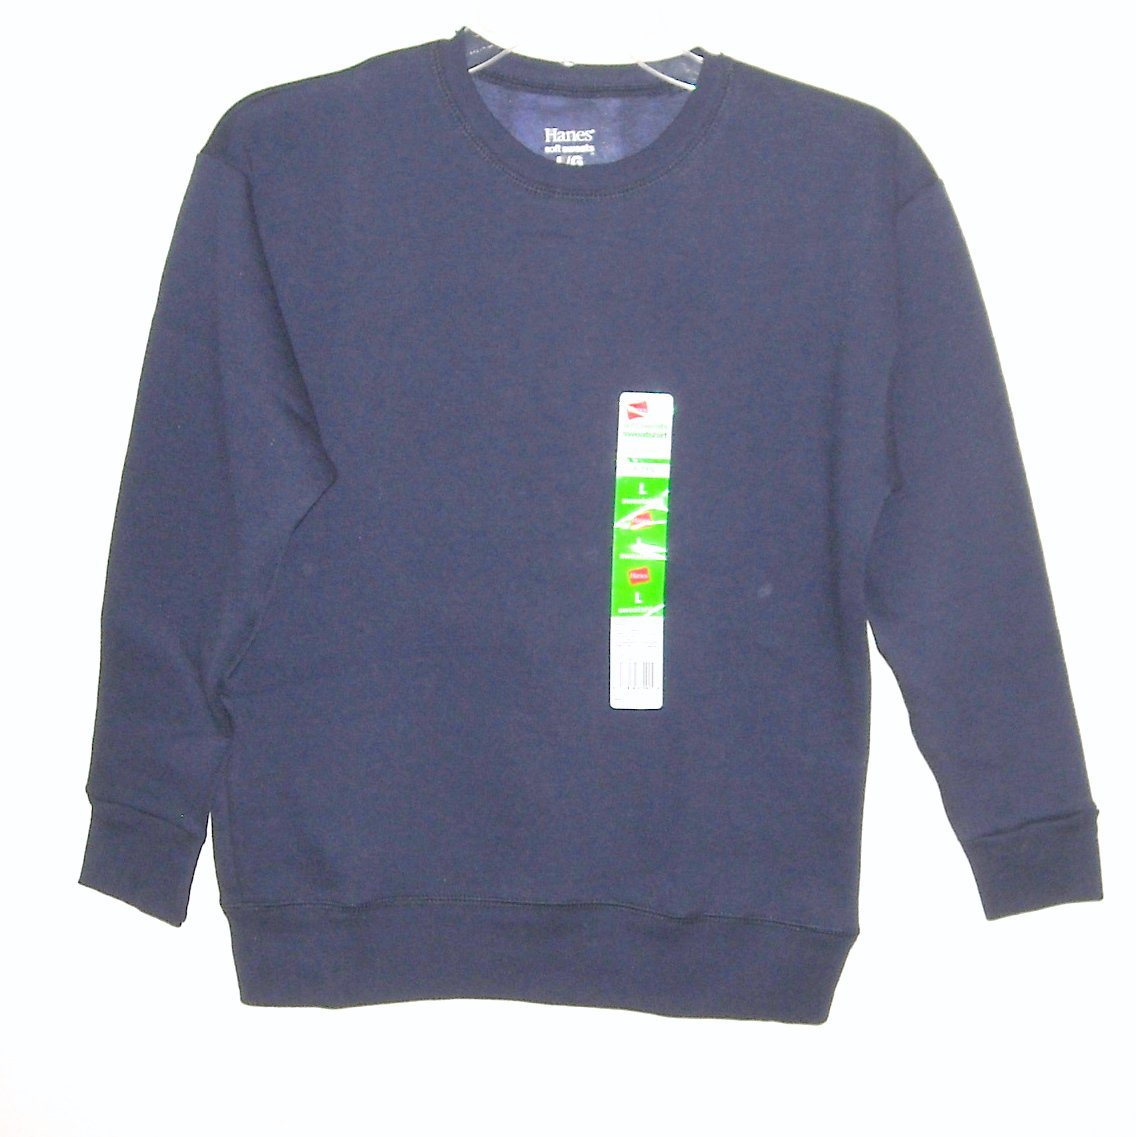 Hanes Boys Soft Navy Blue Sweats Fleece Sweatshirt L / G 10/12